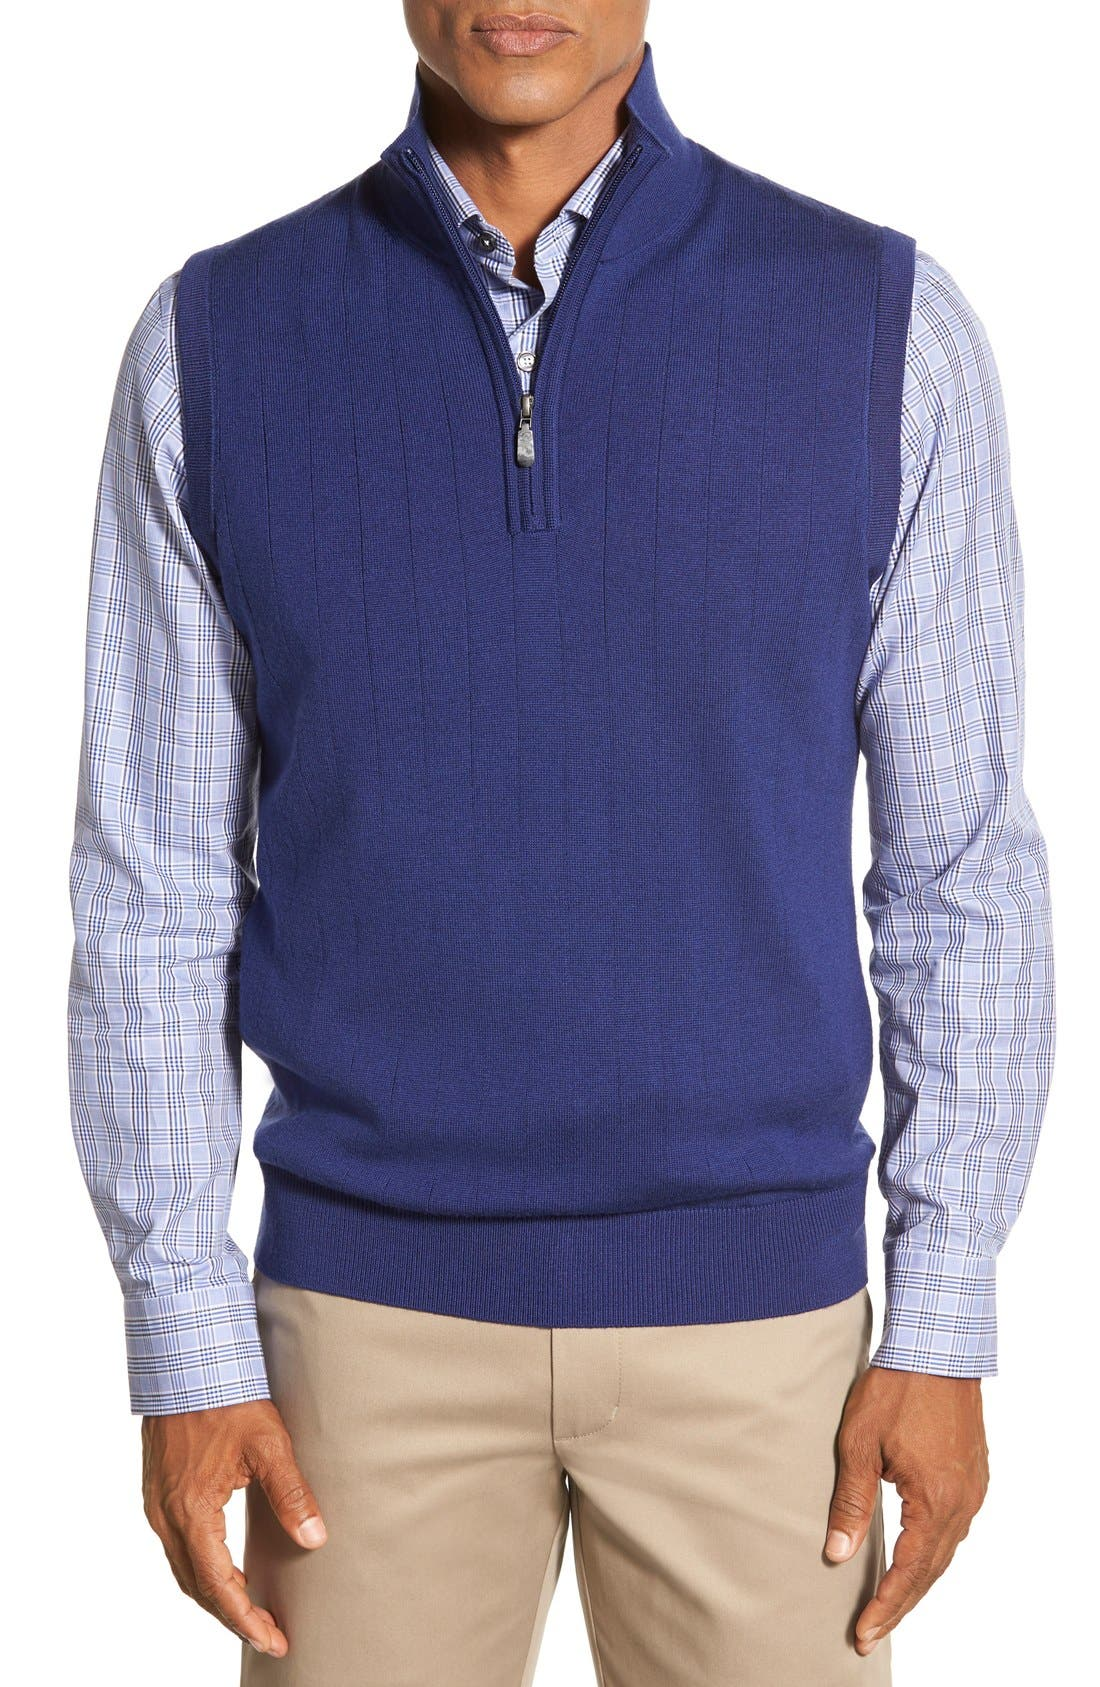 Quarter Zip Wool Sweater Vest,                         Main,                         color, Summer Navy